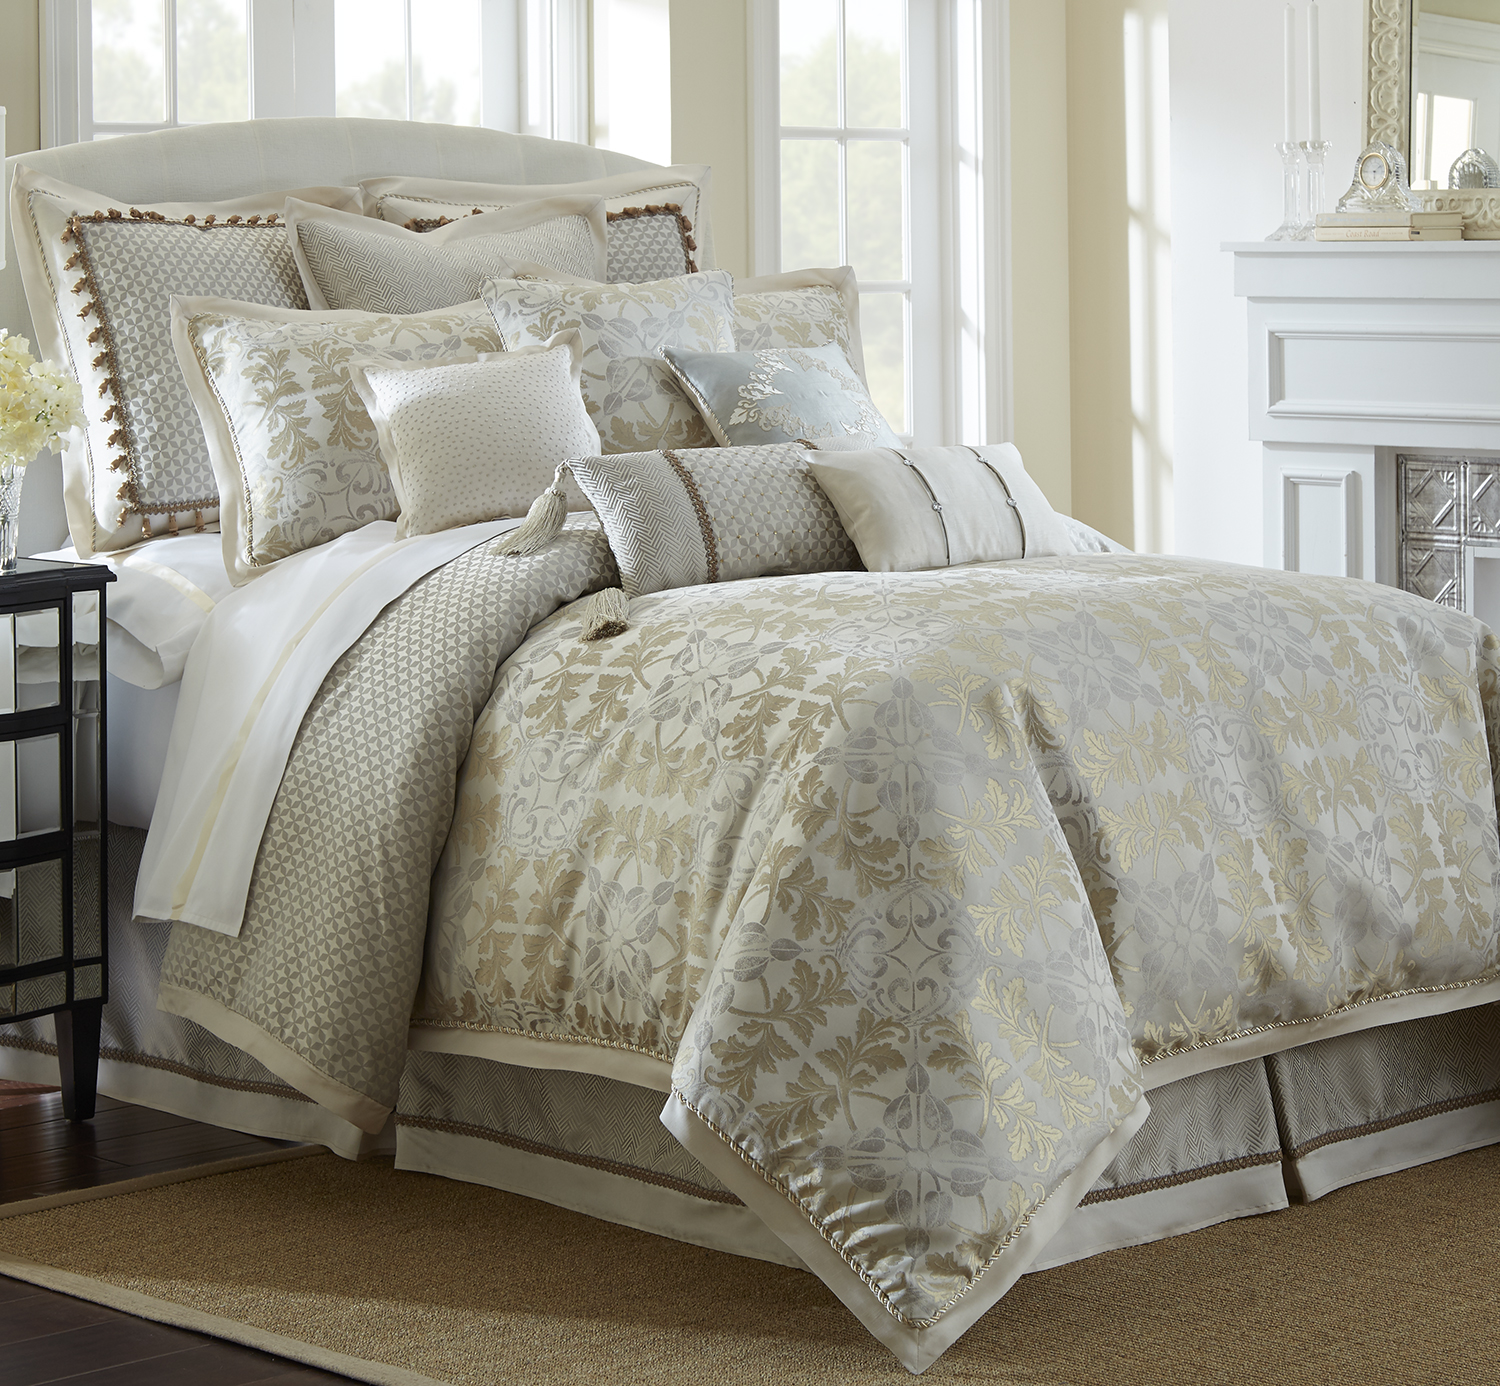 Olivette By Waterford Luxury Bedding Beddingsuperstore Com